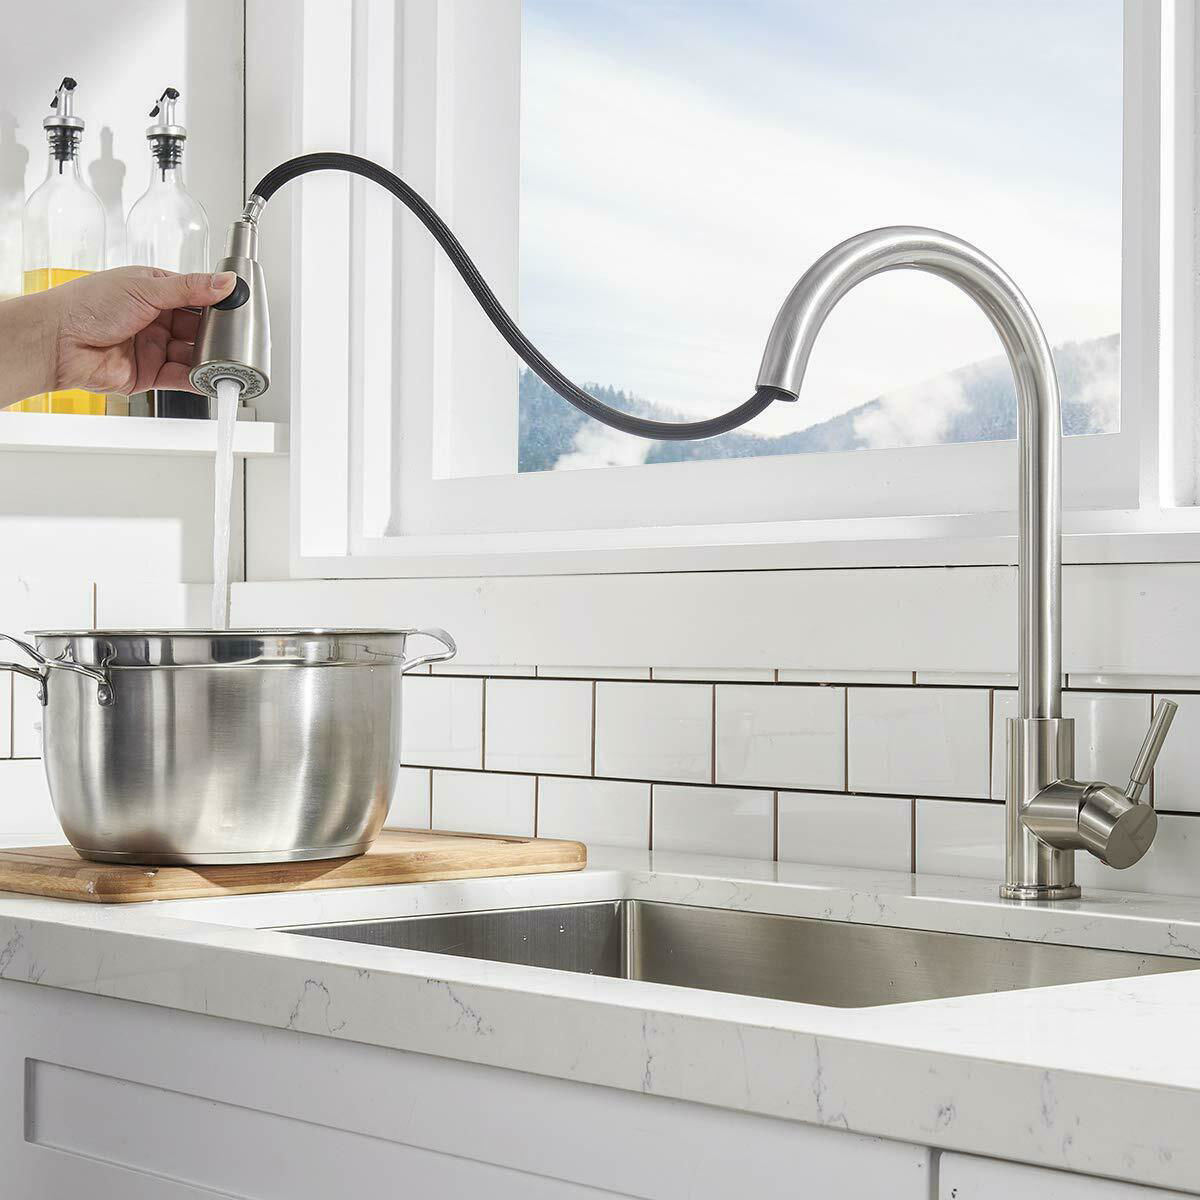 Picture of Kitchen Pull-Out Faucet